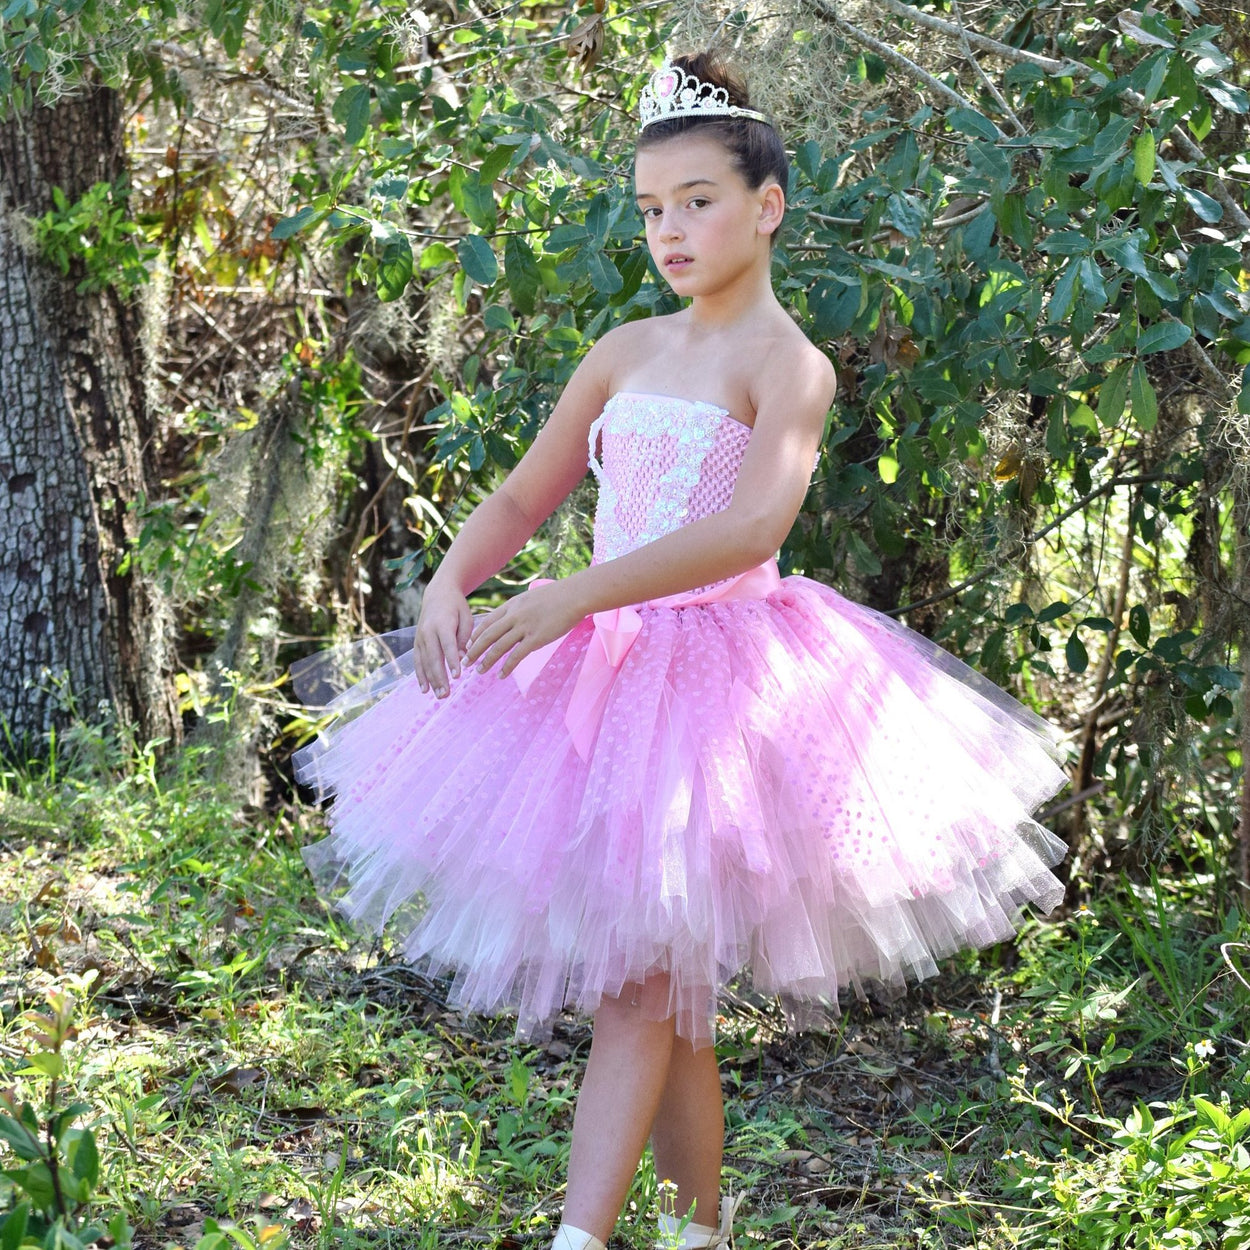 Nutcracker Sugar Plum Fairy Inspired Tutu Ballet Costume